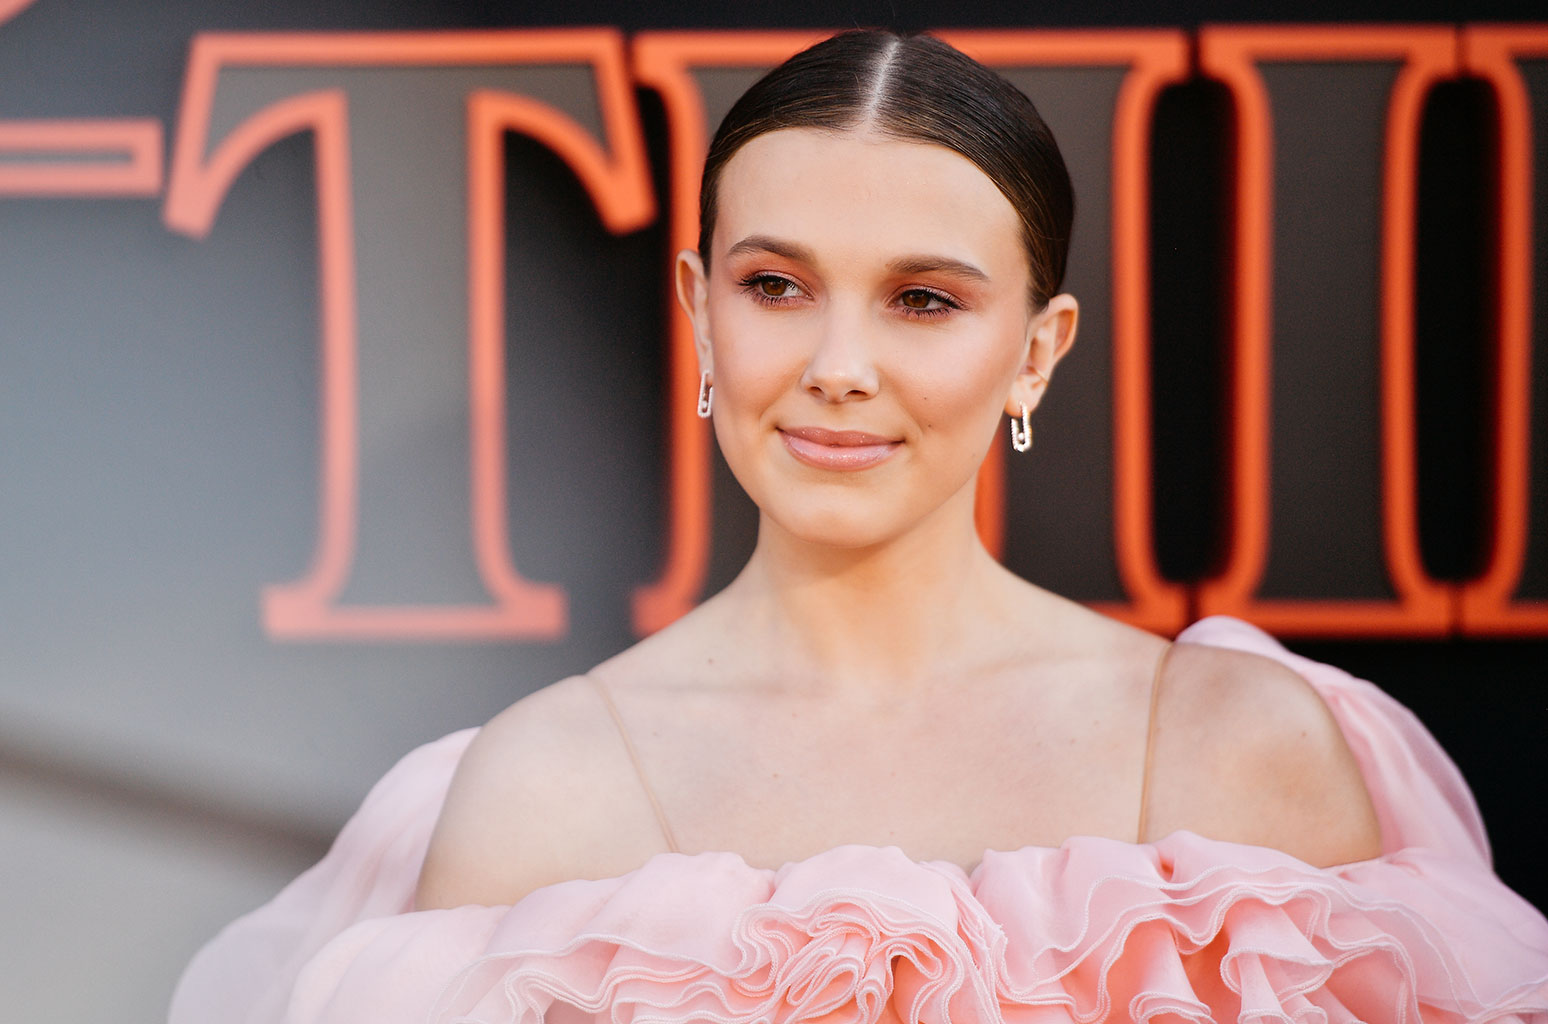 millie bobby brown hd wallpaper 71714